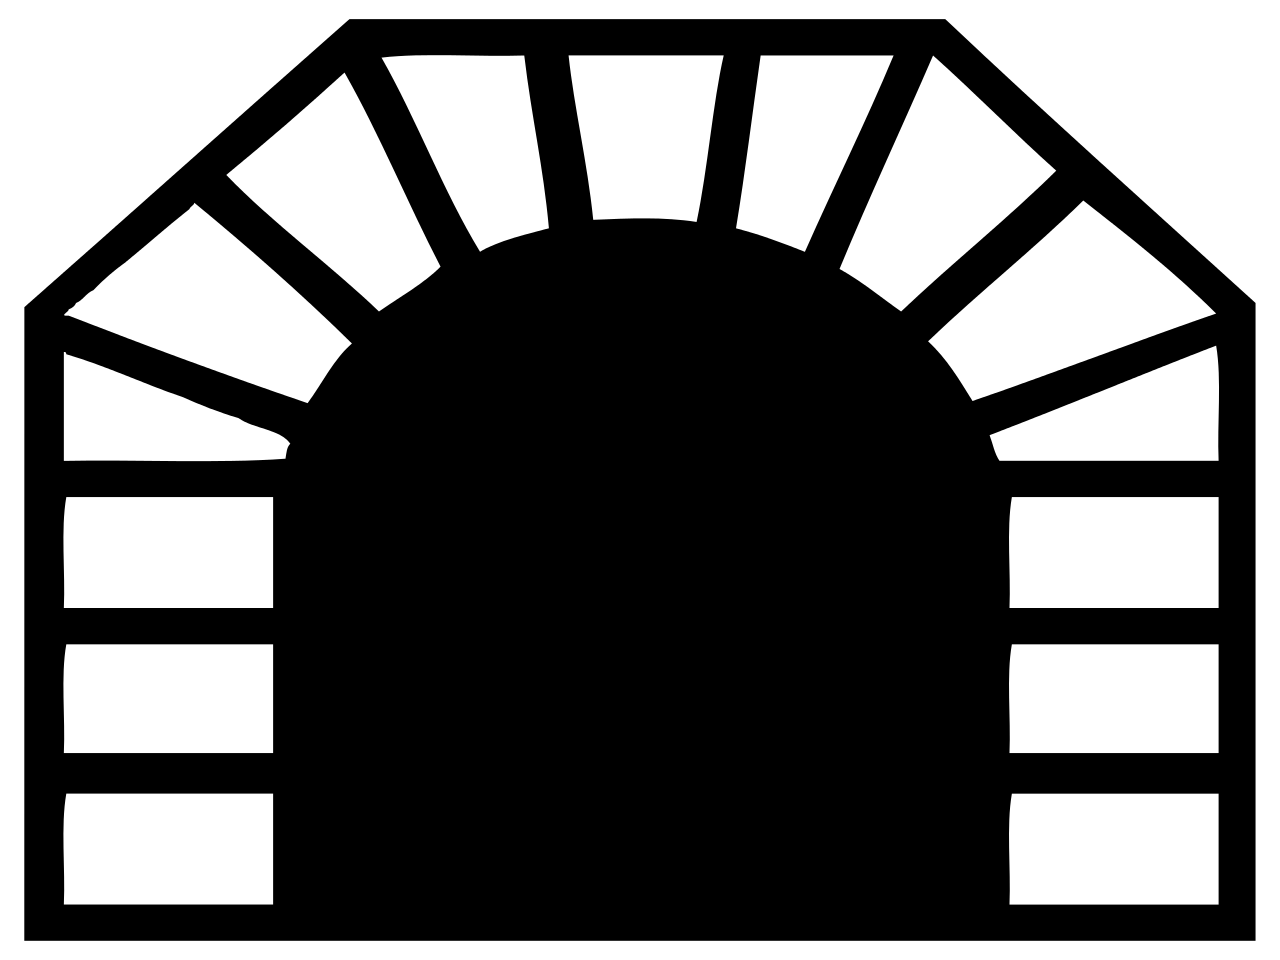 Tunnel Png Icon image #38516